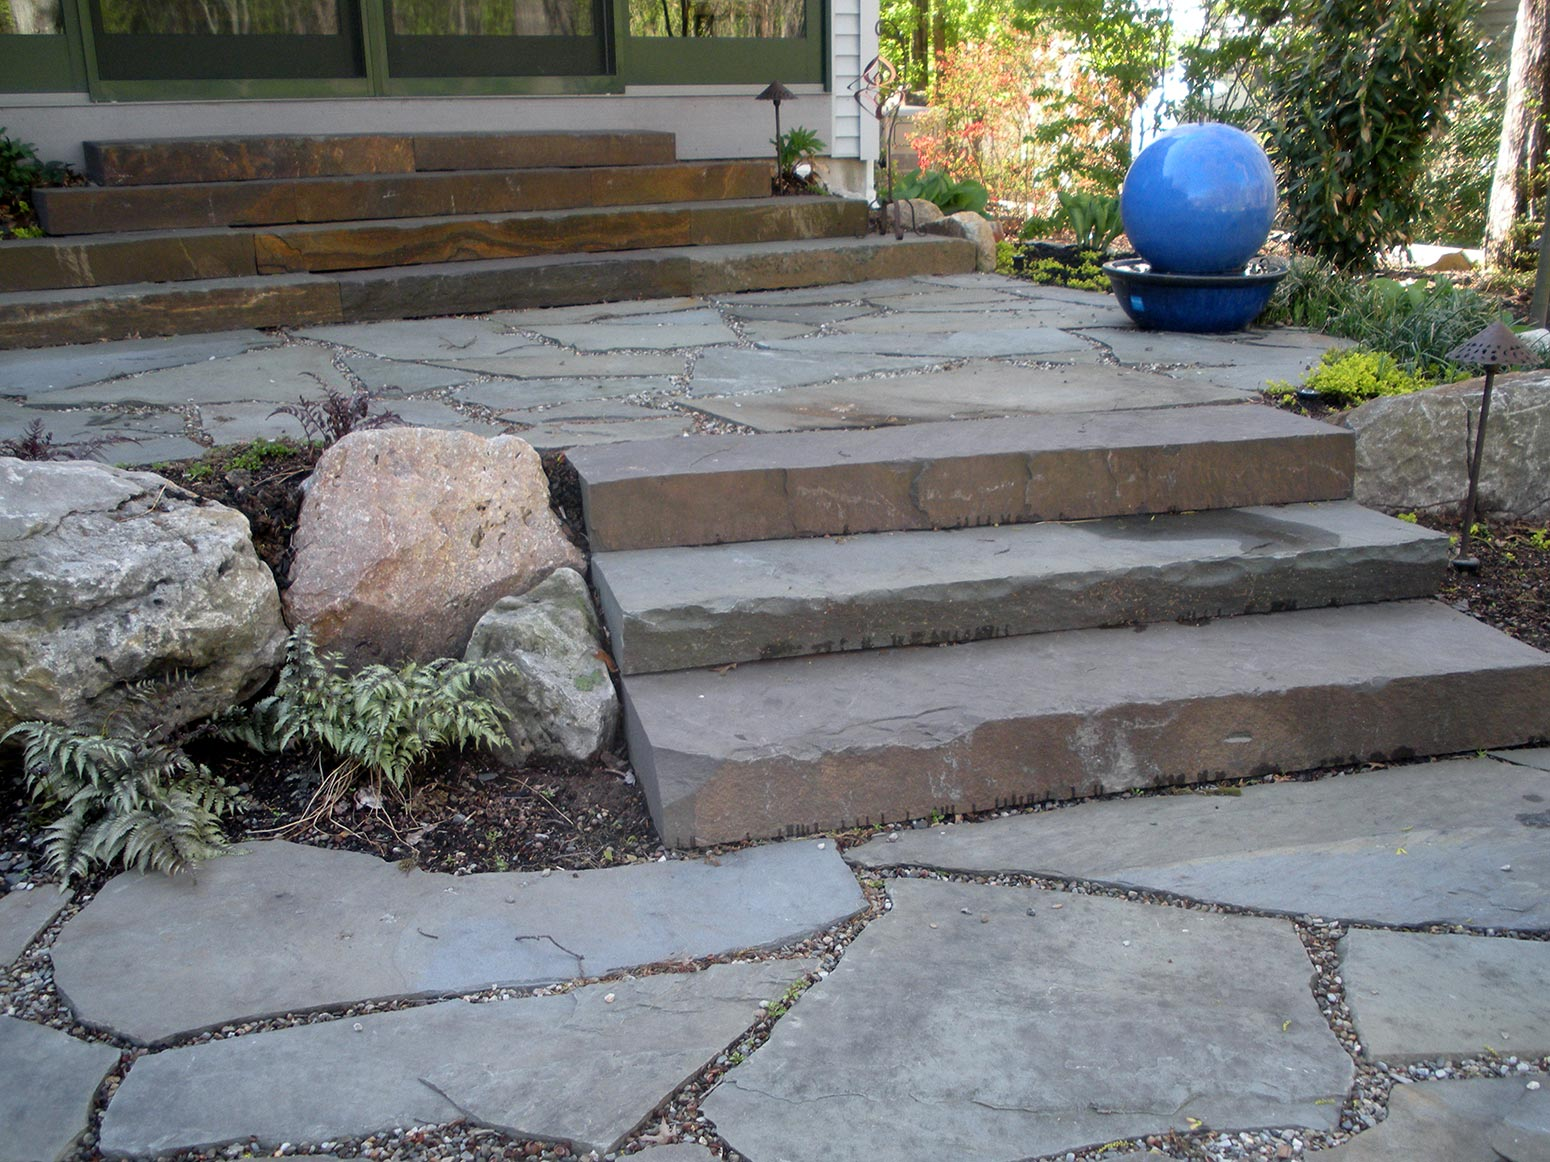 natural stone, ep henry paver walkways, brick patio designs, paver ... - Natural Stone Patio Designs